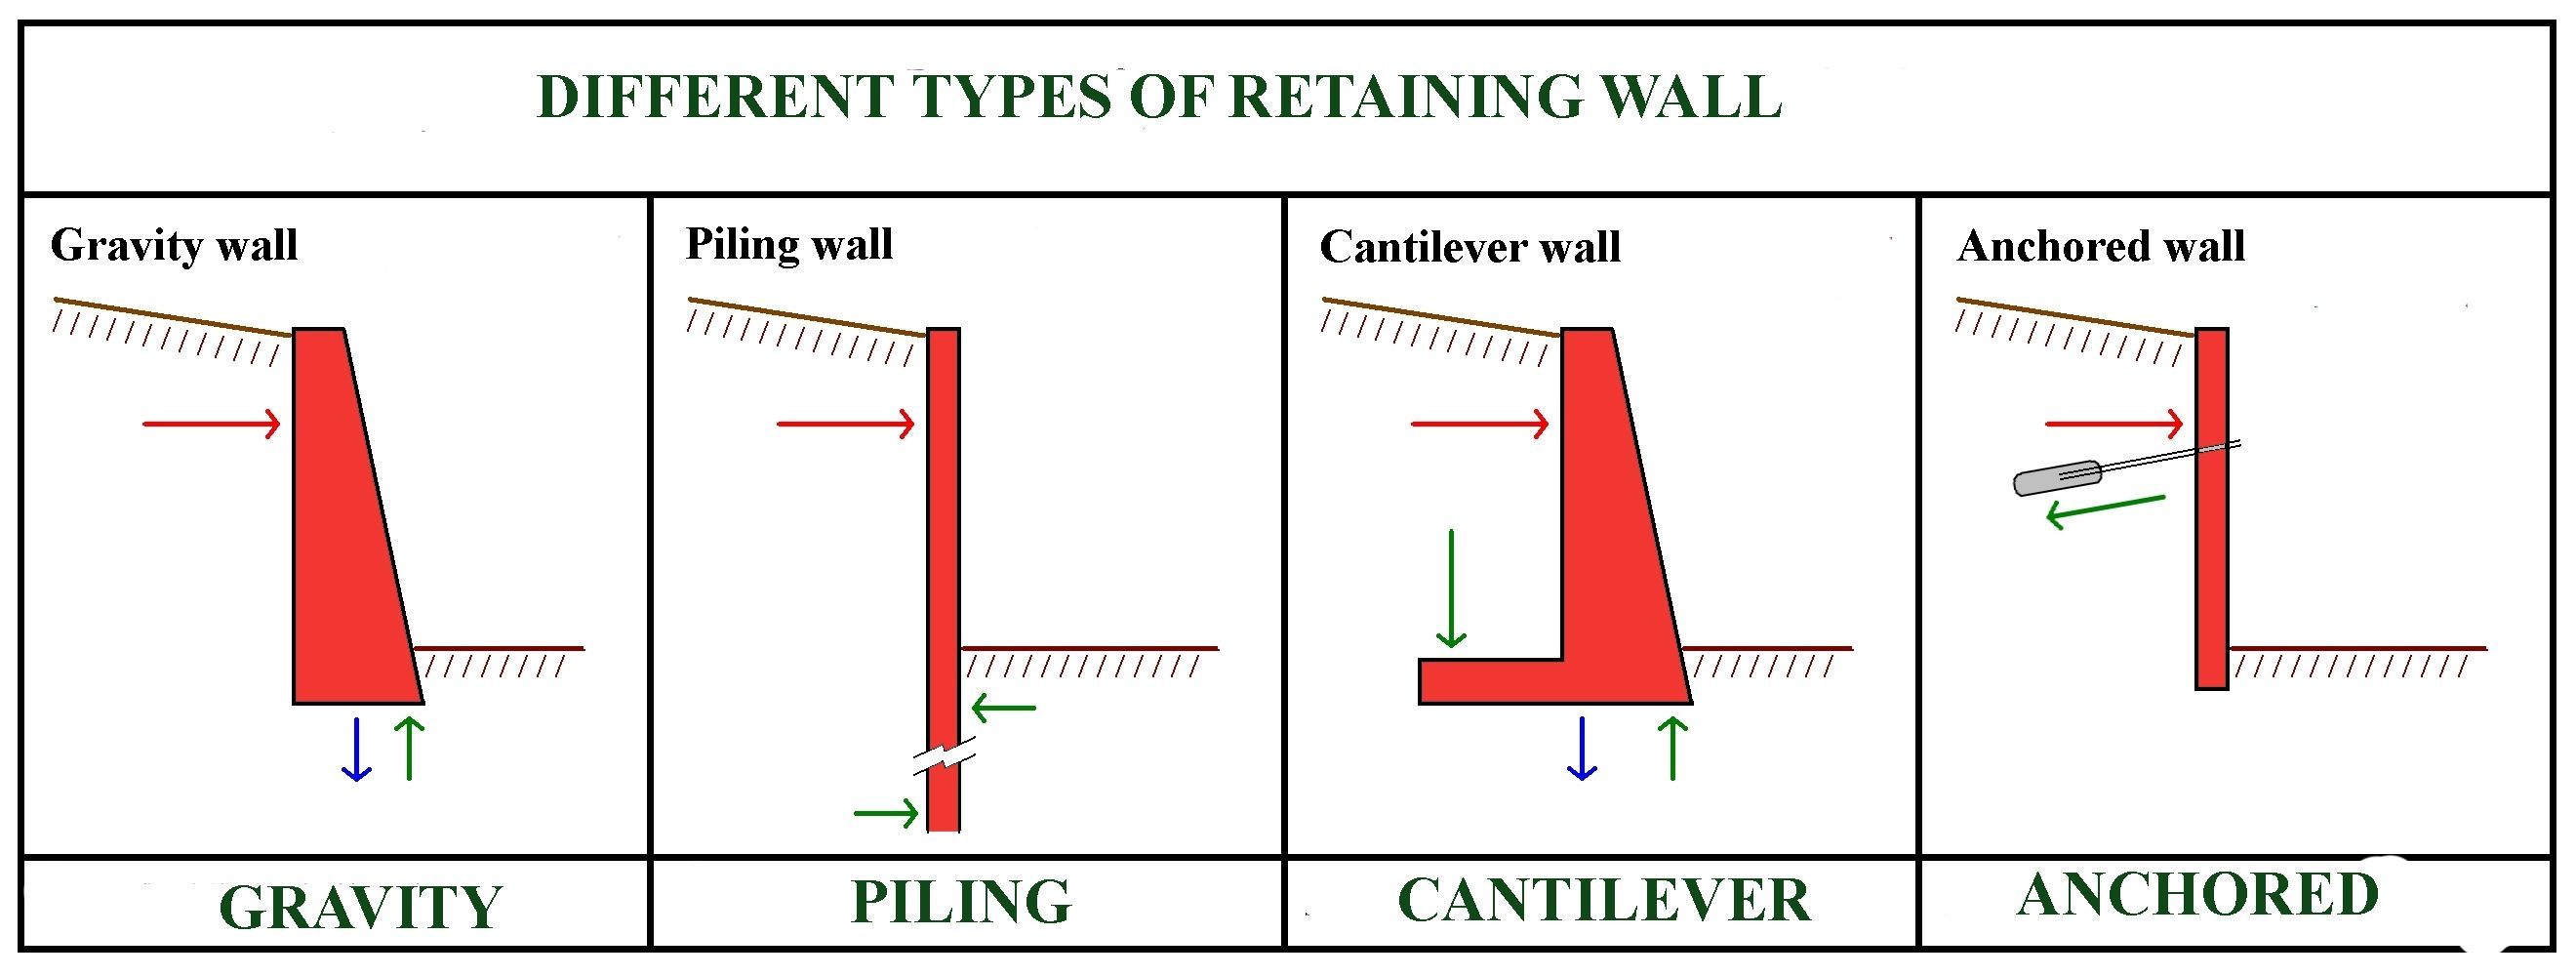 Superior Cantilever Retaining Wall Structural Design